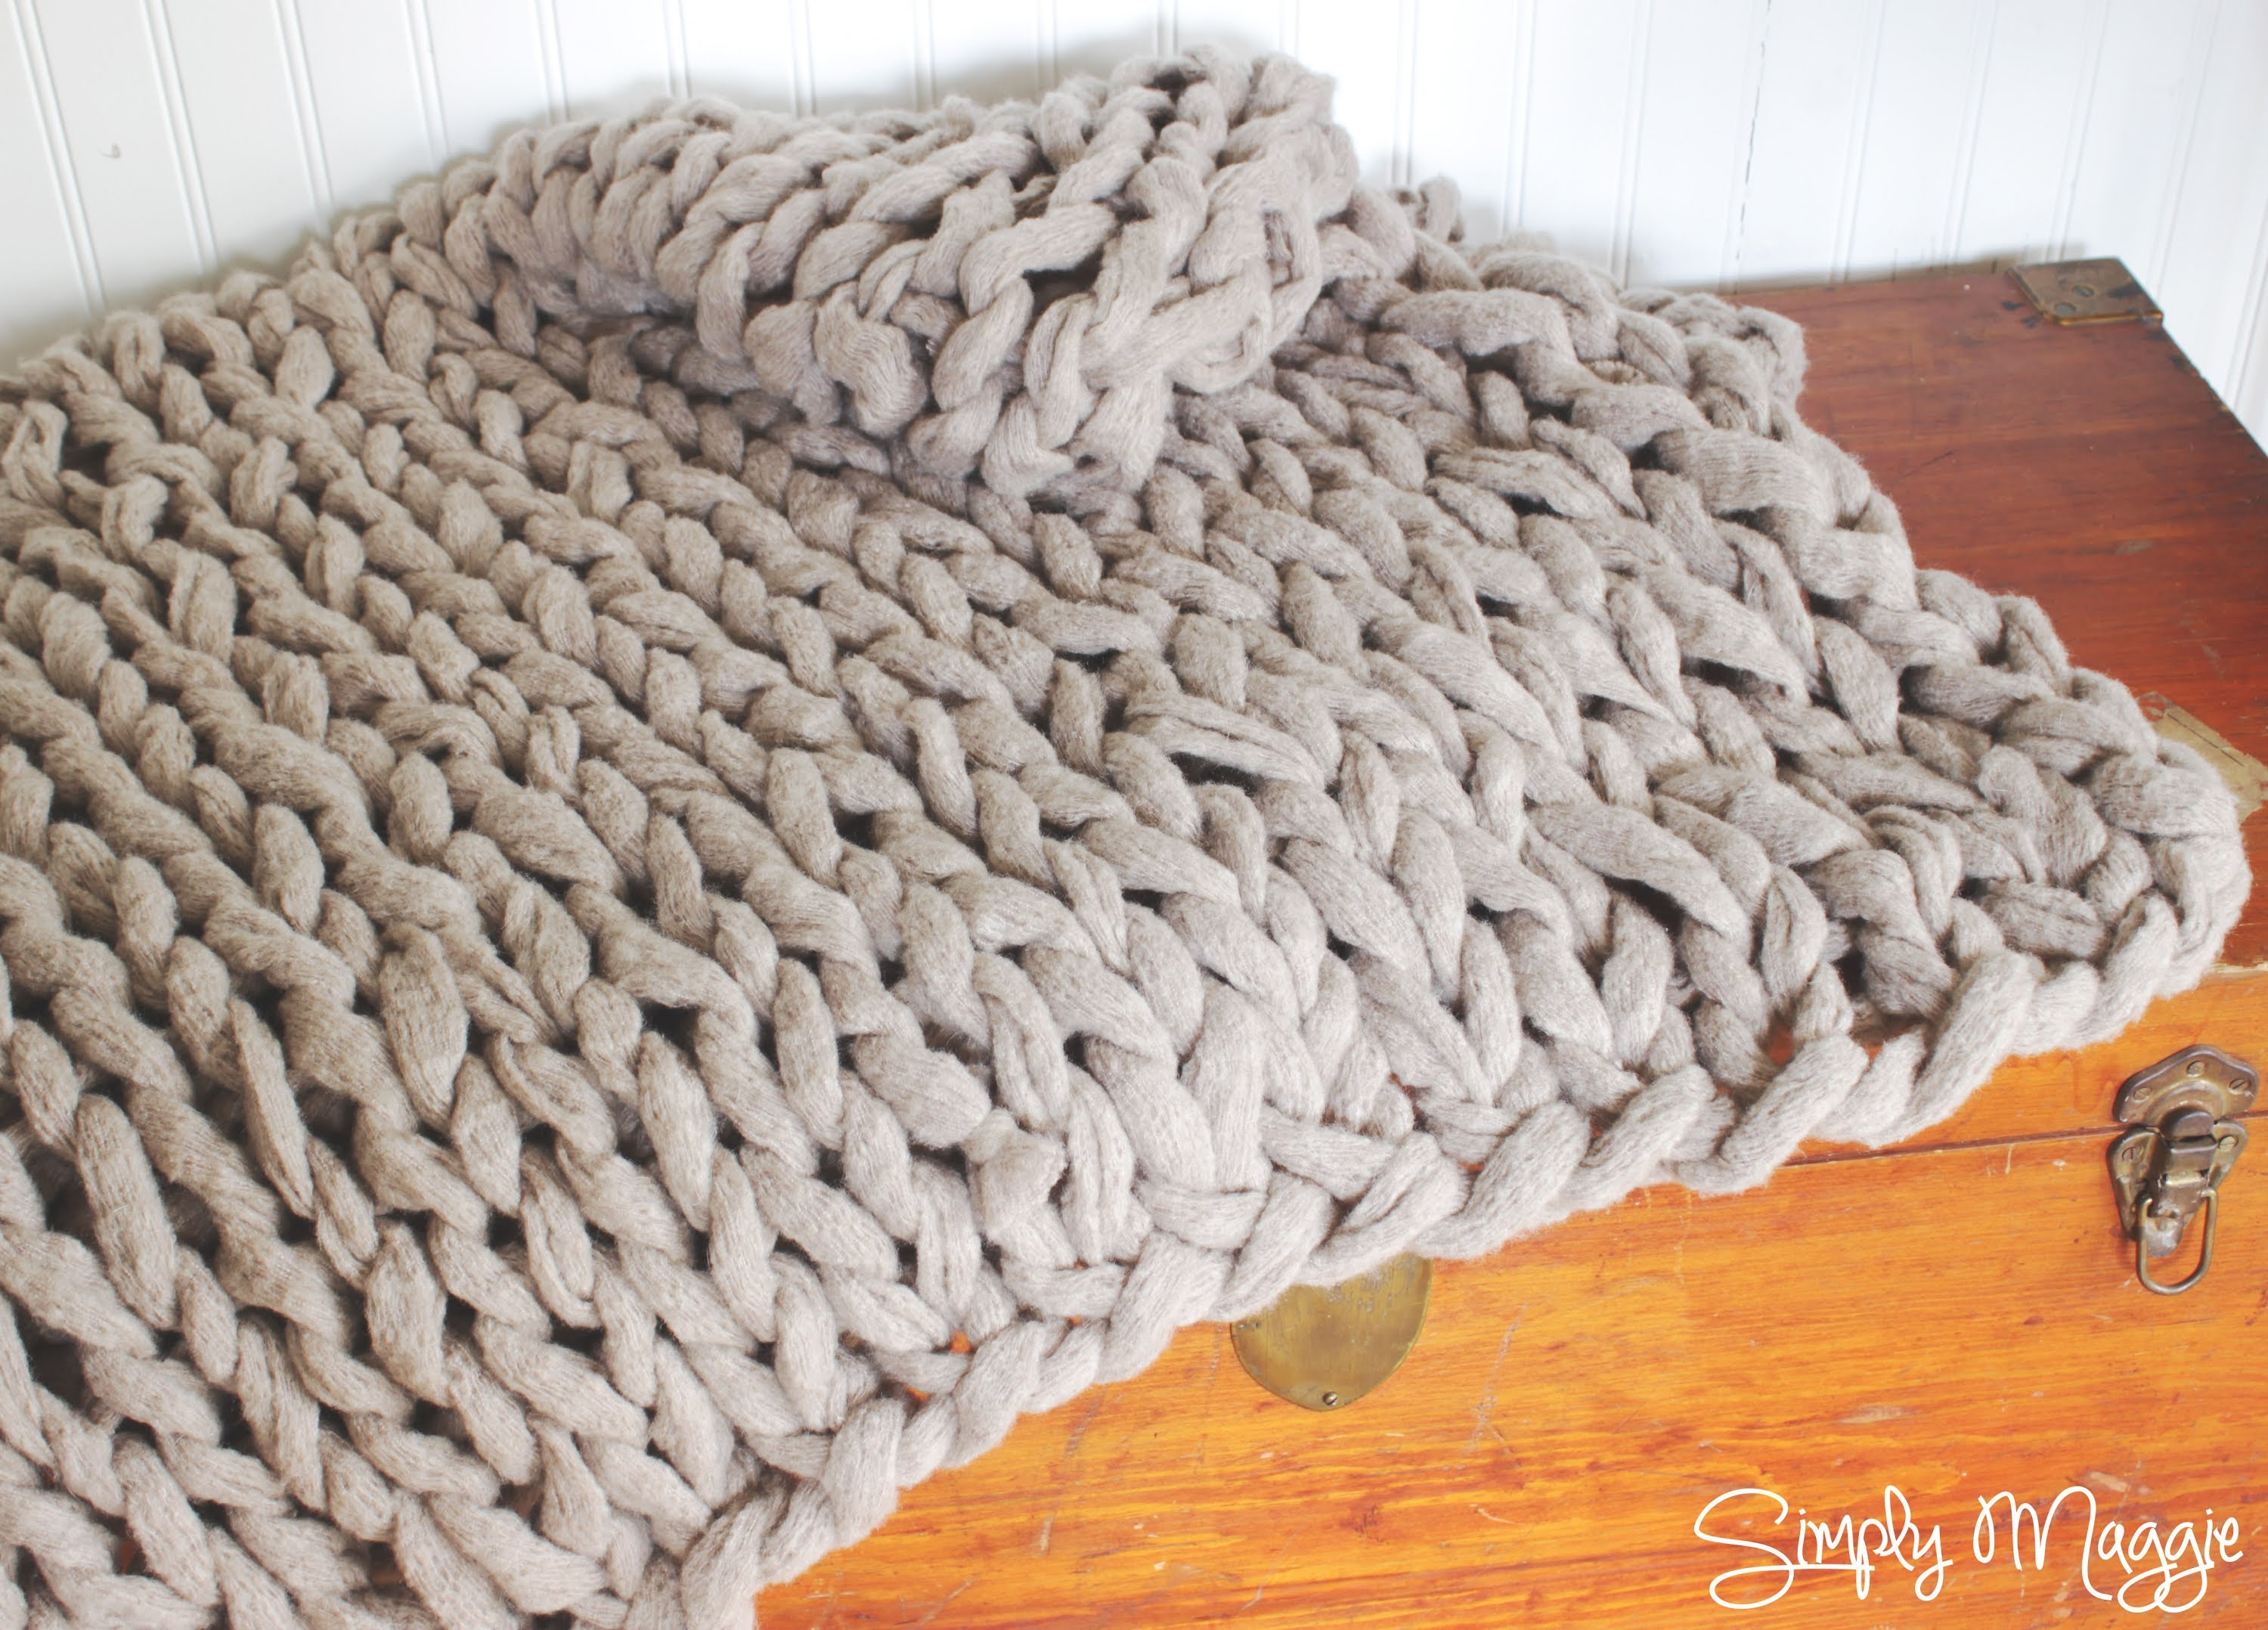 knitted blanket how to arm knit a blanket in 45 minutes with simply maggie - youtube OMZFPYB